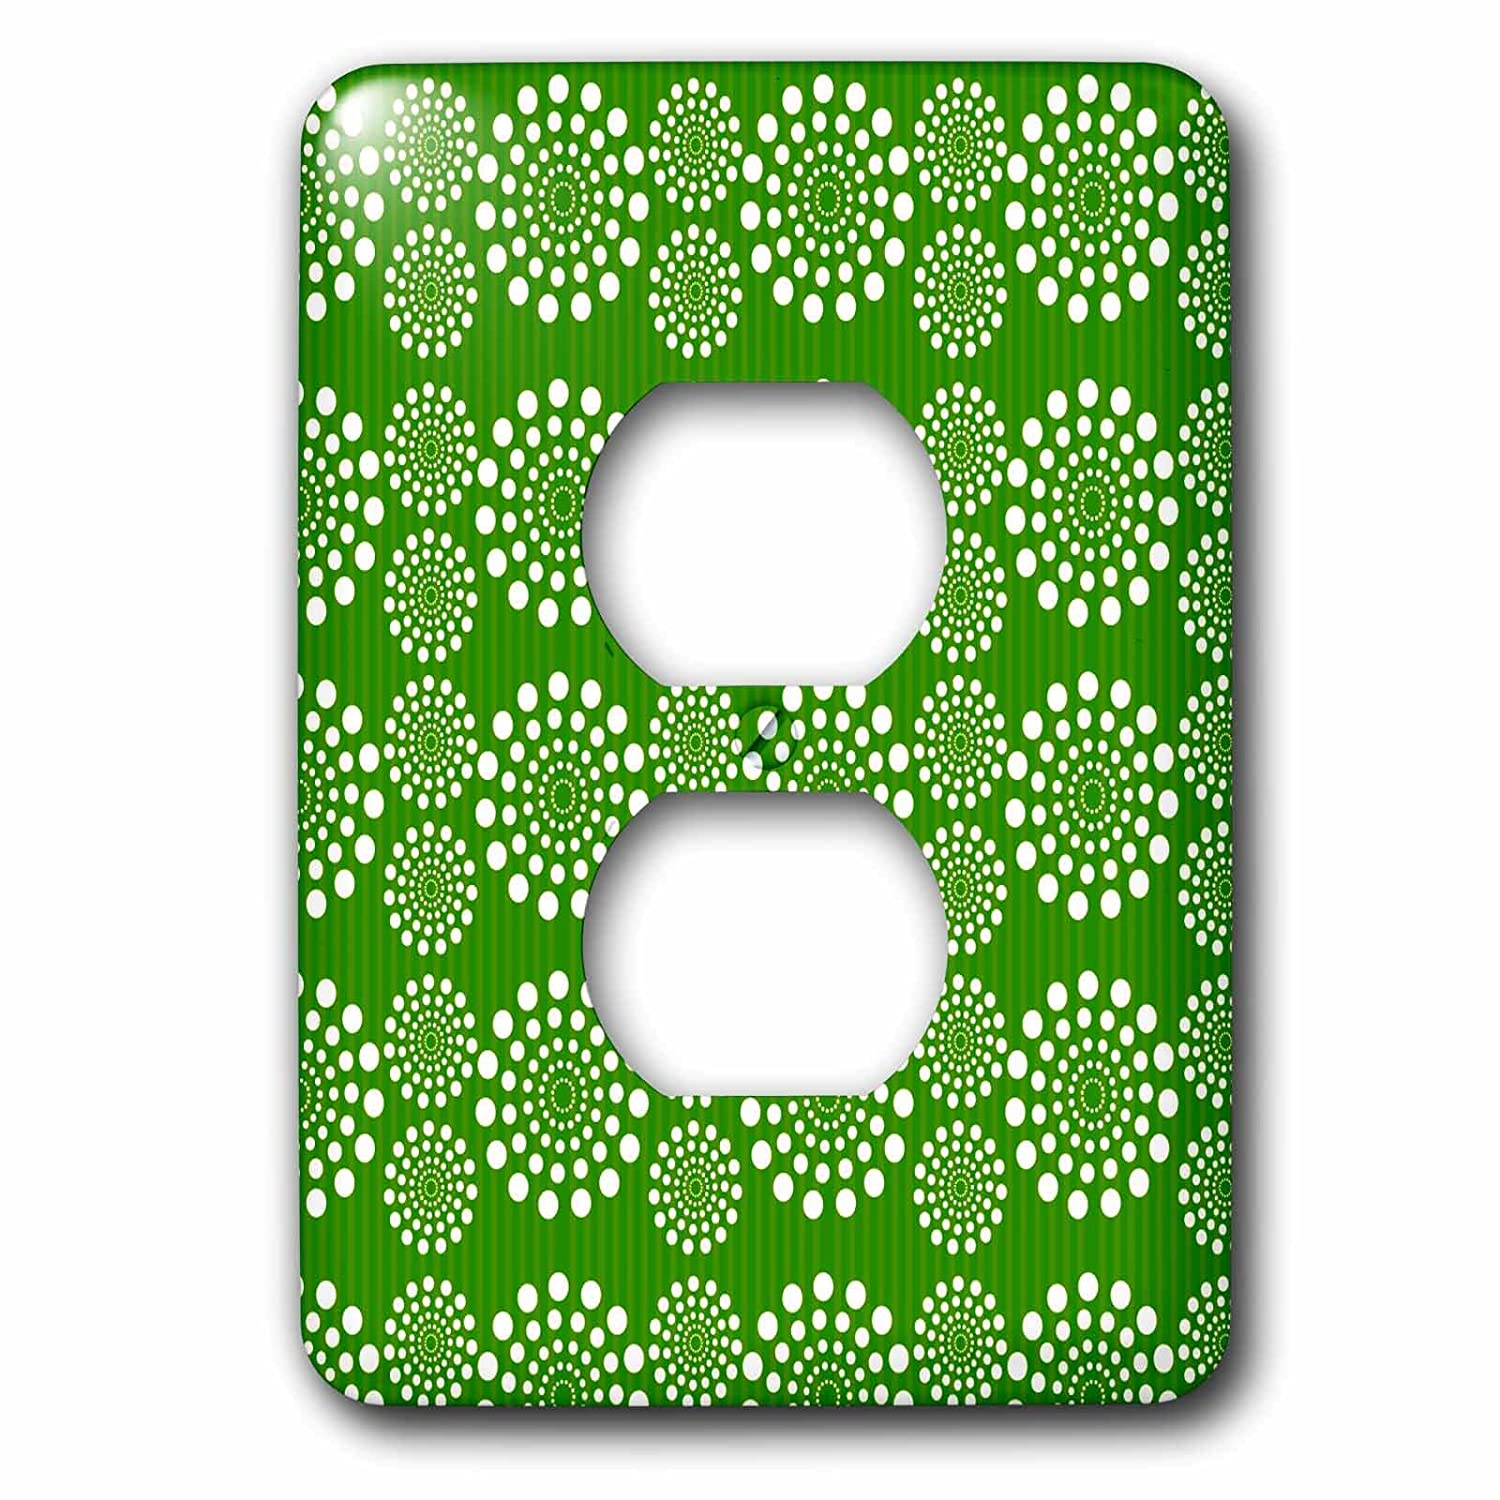 3dRose lsp/_169373/_6 Retro Green and White Dot Circles Pattern Light Switch Cover